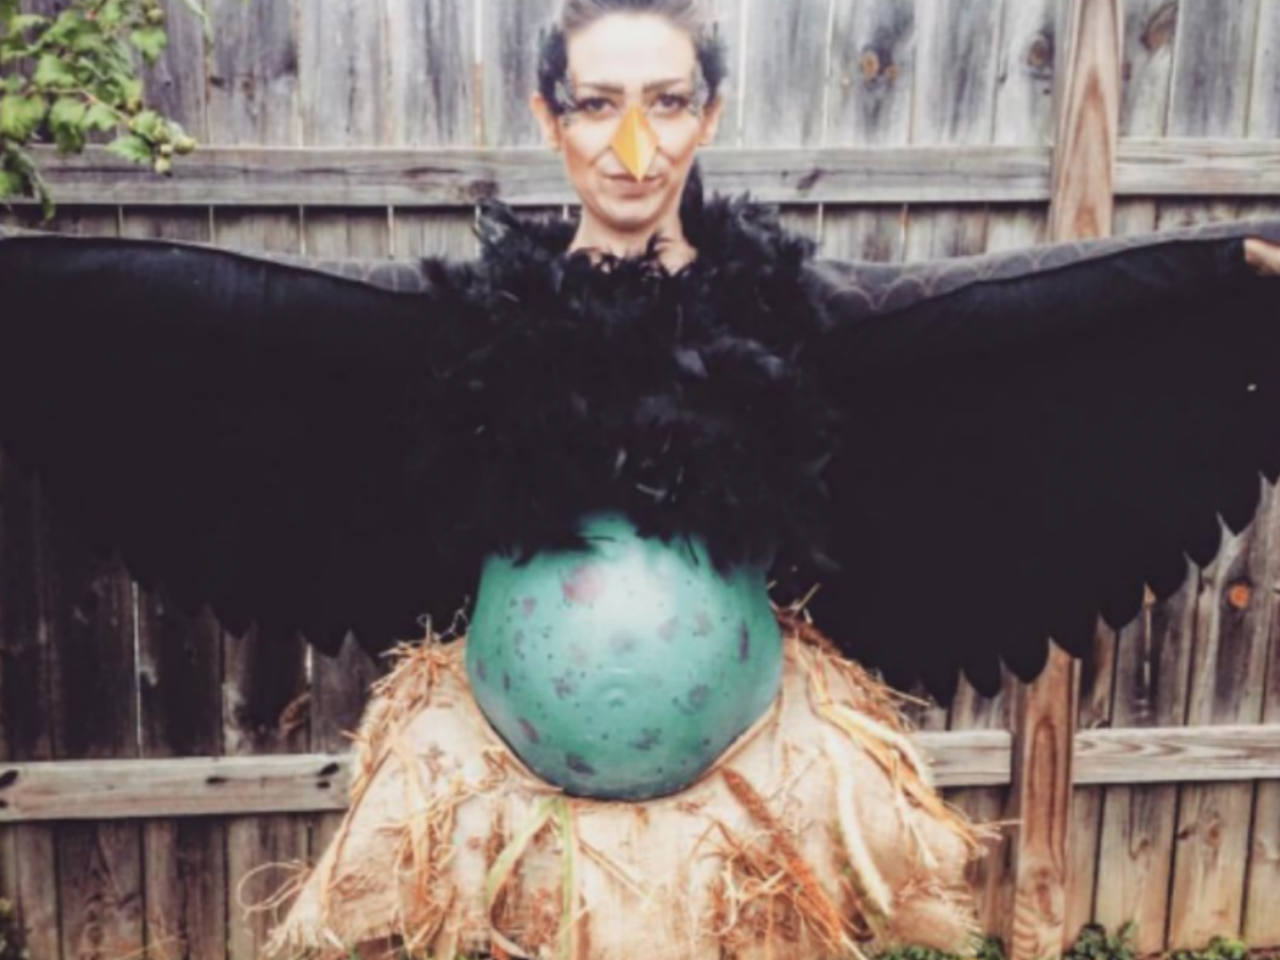 A pregnant woman dressed as a bird